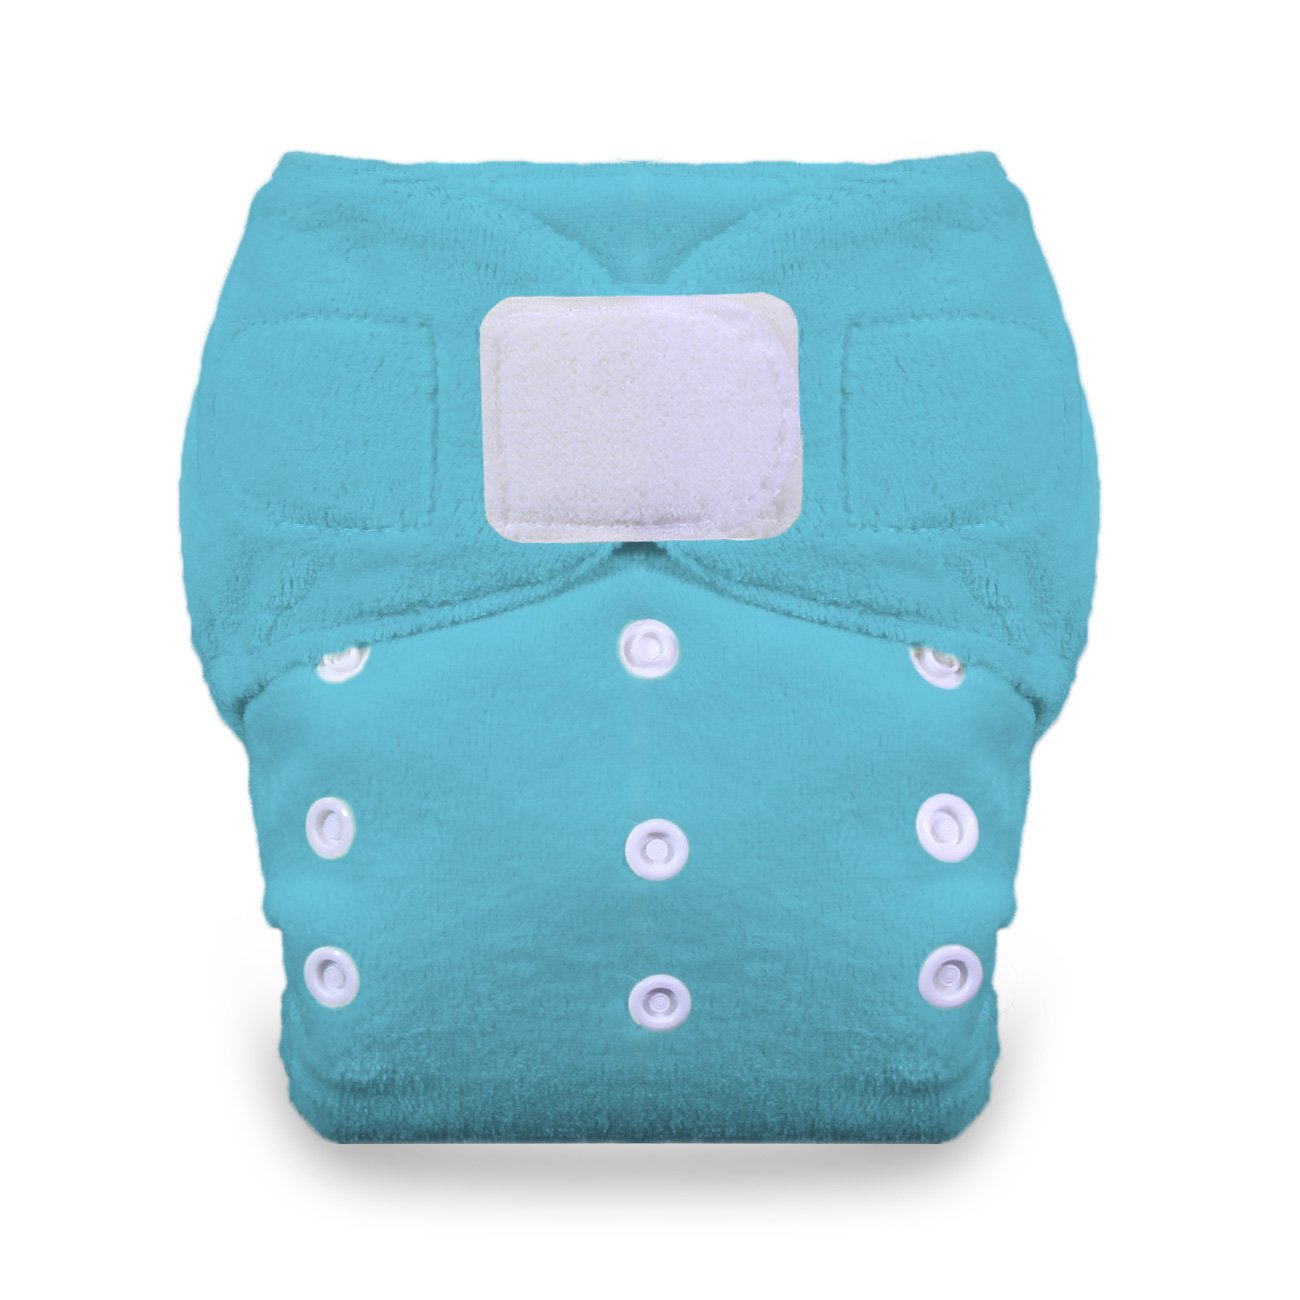 Thirsties Duo Fab Fitted Cloth Diaper with Hook and Loop Ocean Blue Size 1